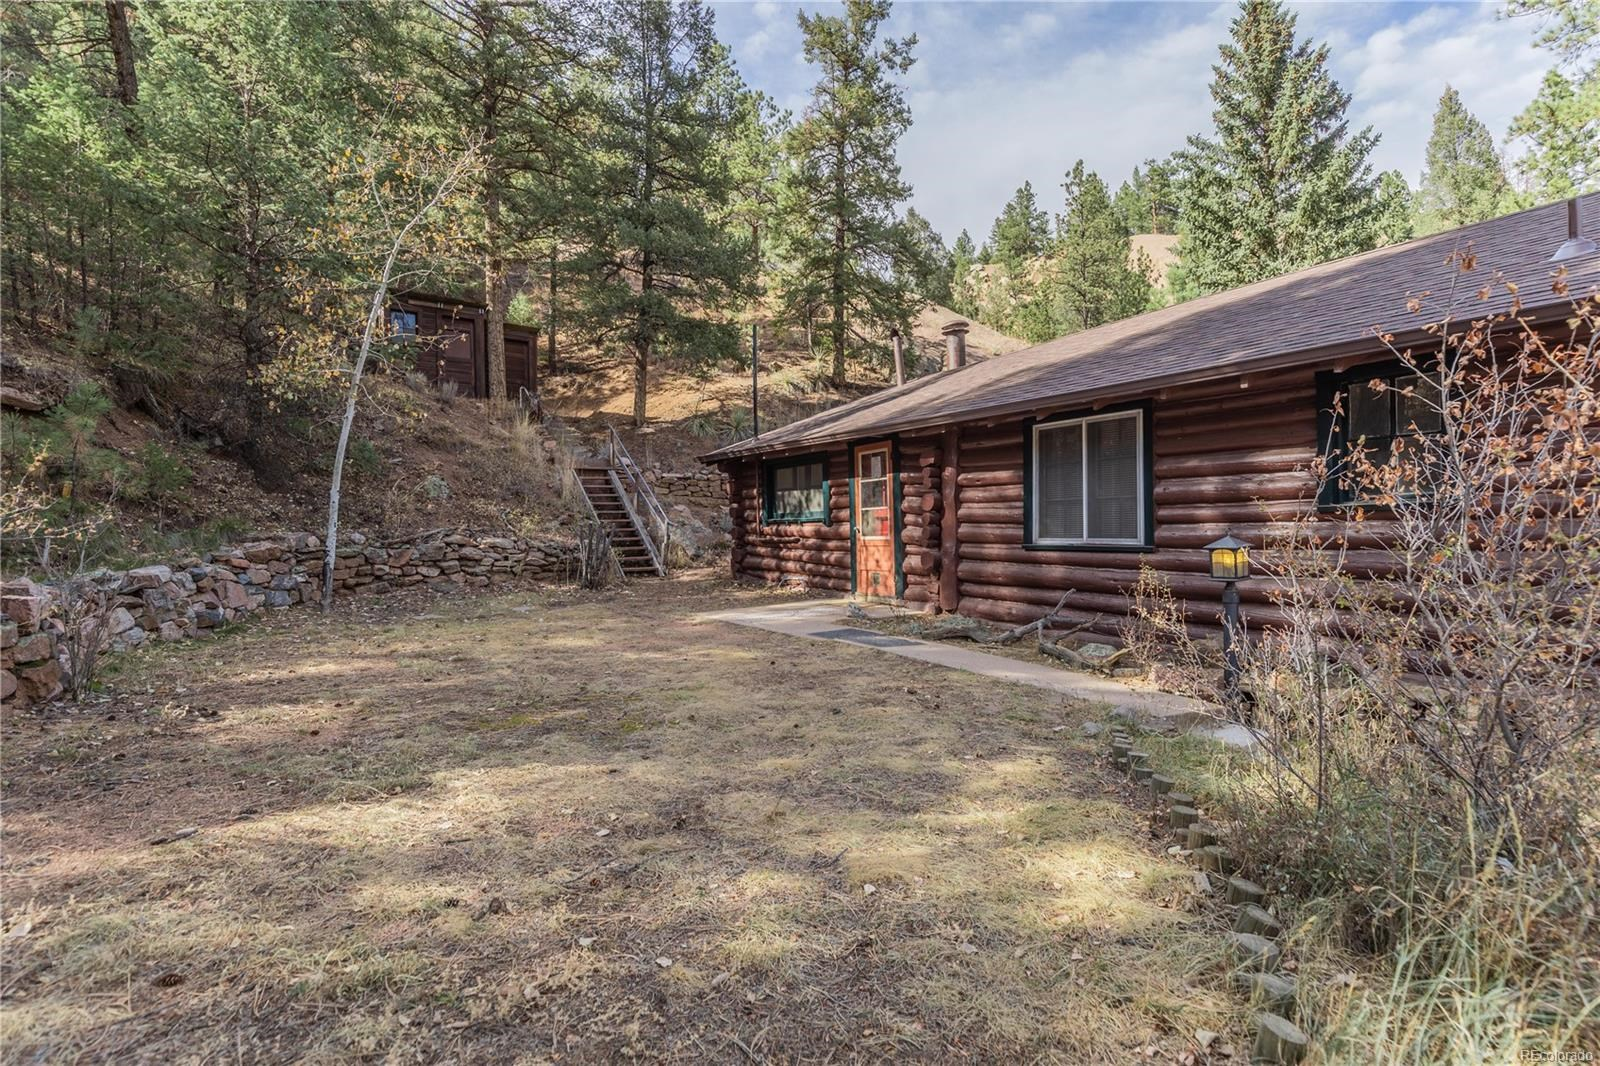 MLS# 3100431 - 23 - 15827 Old Stagecoach Road, Pine, CO 80470